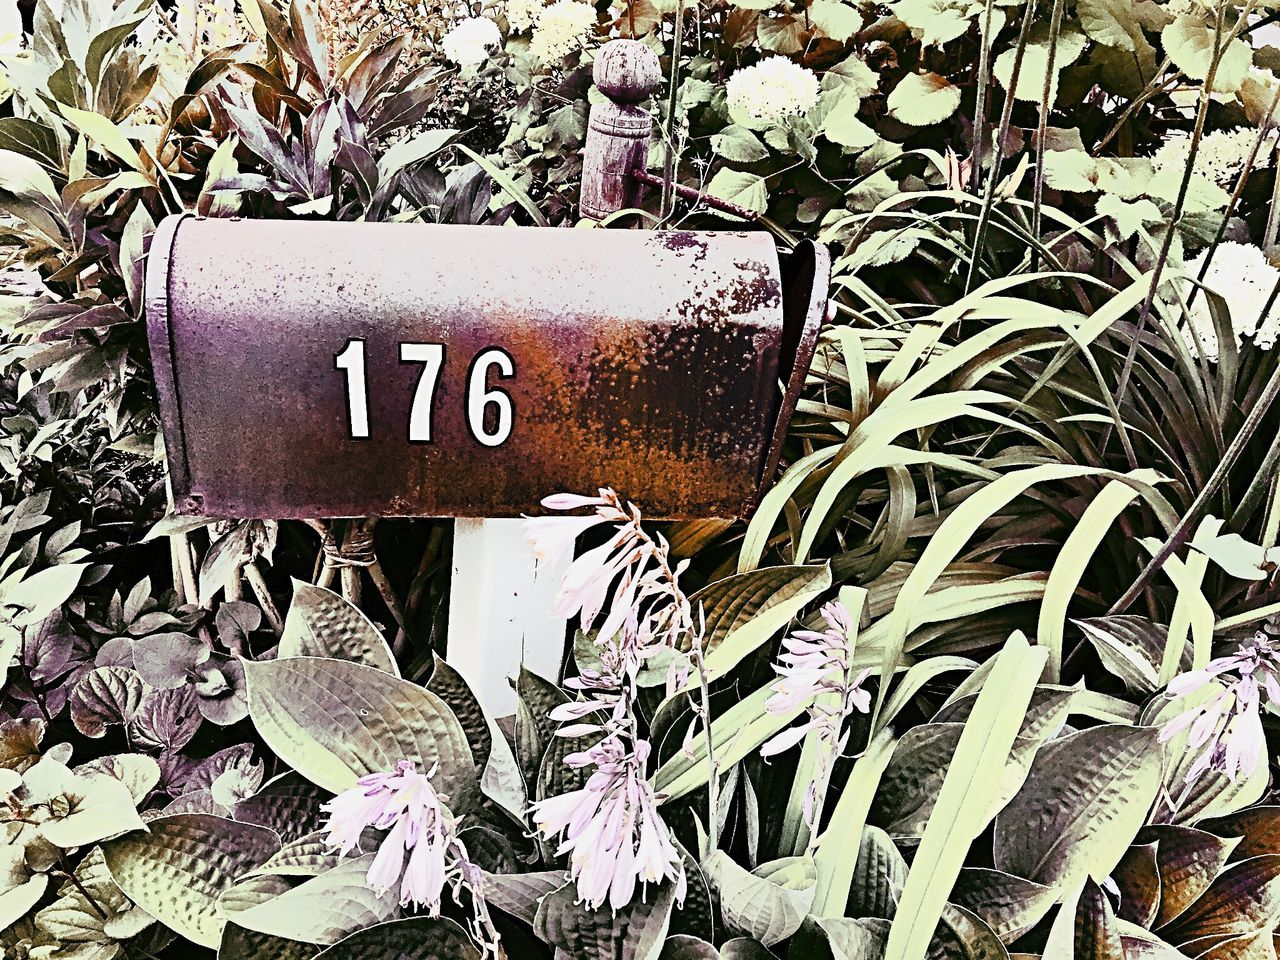 Mailbox Art 176 Mailbox Number Digits Numbers Mail Box Art Fine Art Photography StillLifePhotography Still Life Garden Home Mailboxes Vintage Vintage Style Artistic Green Bushes Nature Gardens Garden Flowers Express Expression Rusty Lifestyles Home Sweet Home Decor